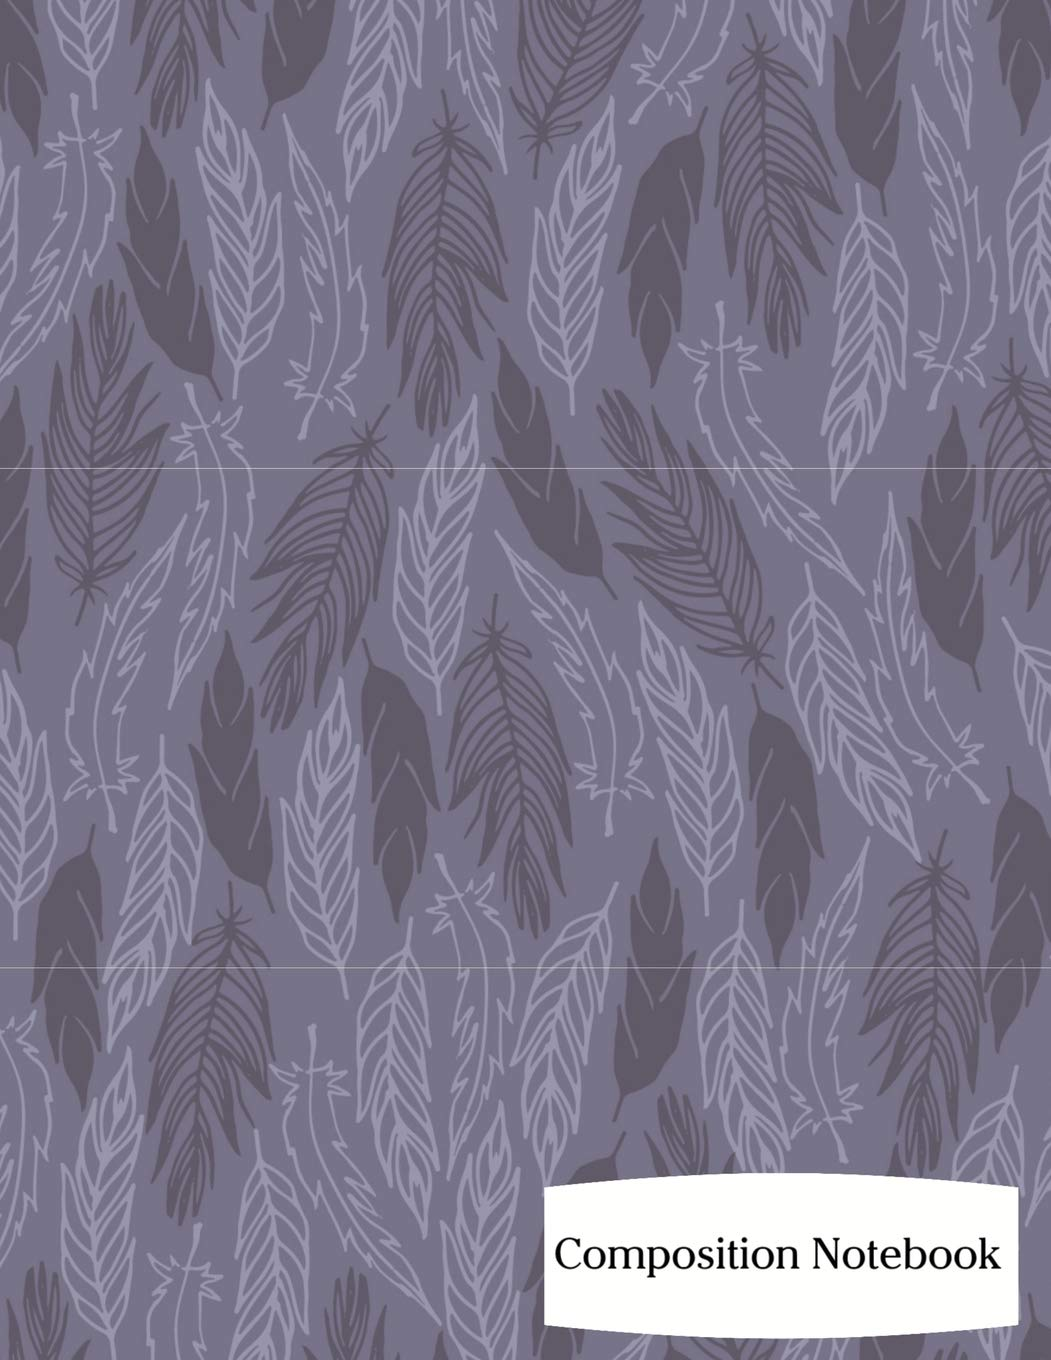 """Composition Notebook: Purple Feathers Composition Notebook - 8.5"""" x 11"""" - 200 pages (100 sheets) College Ruled Lined Paper. Glossy Cover. PDF"""